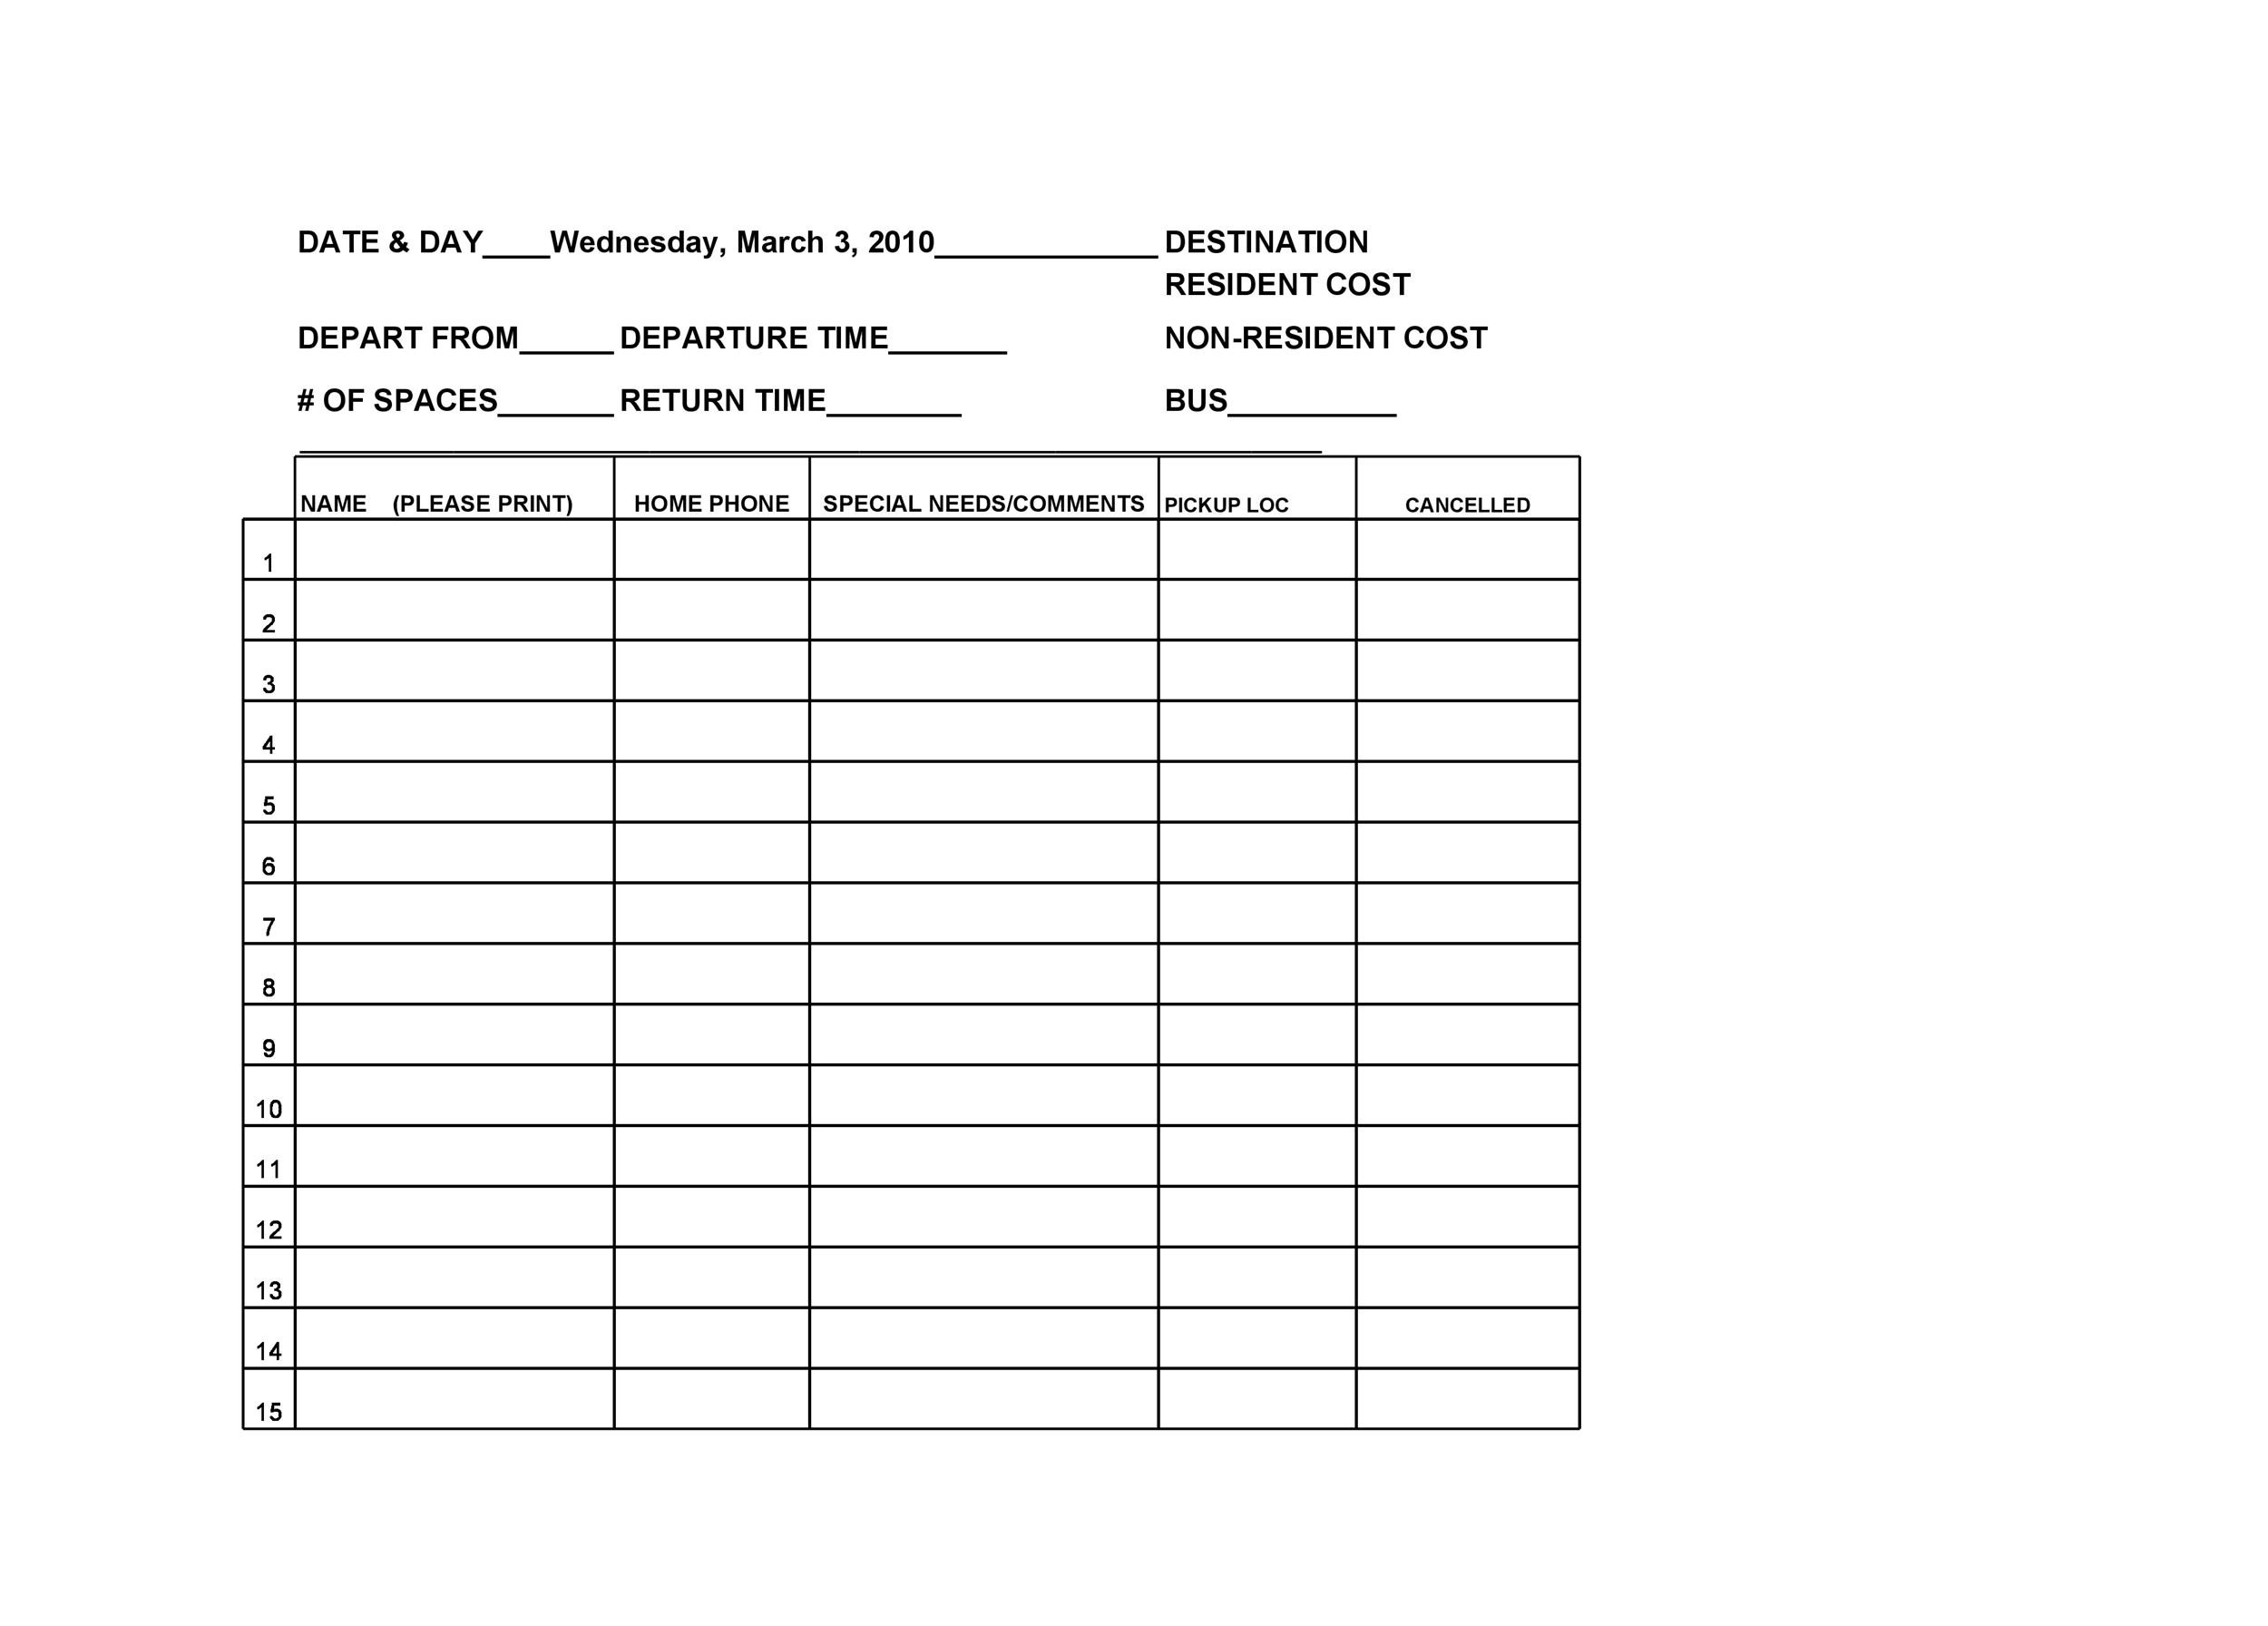 image regarding Will Return Sign Printable titled 40 Indication Up Sheet / Signal Within Sheet Templates (Term Excel)